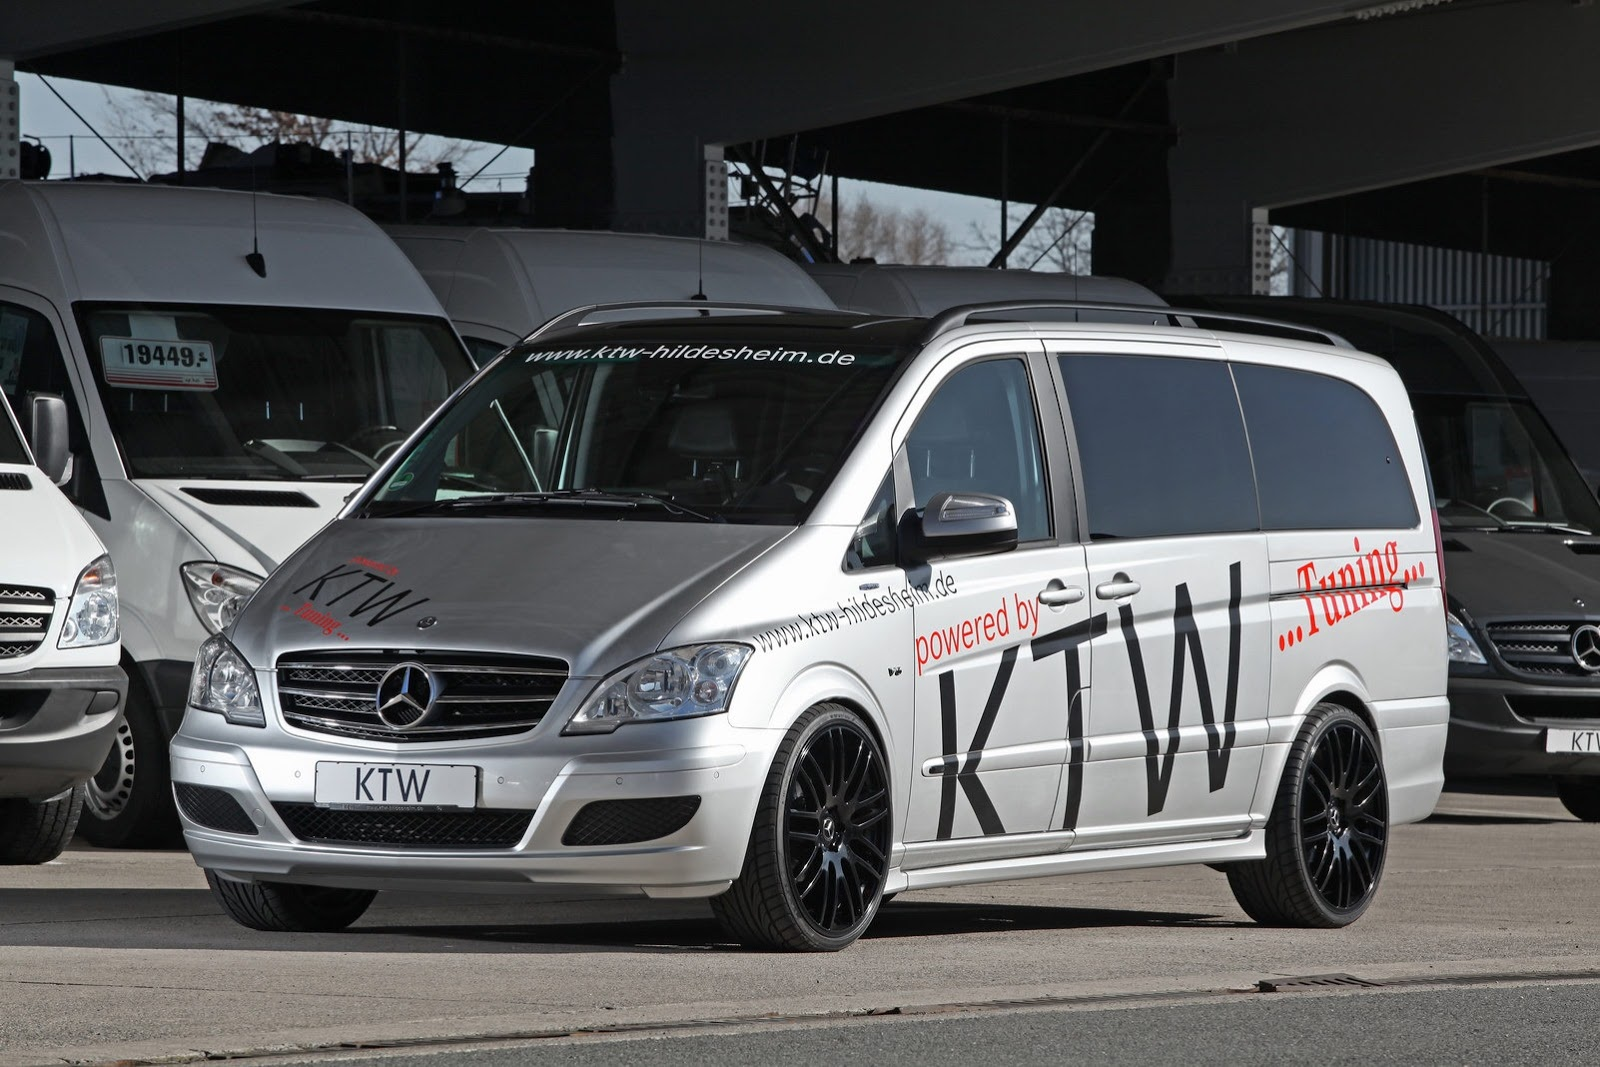 tuned mercedes viano by ktw autoevolution. Black Bedroom Furniture Sets. Home Design Ideas